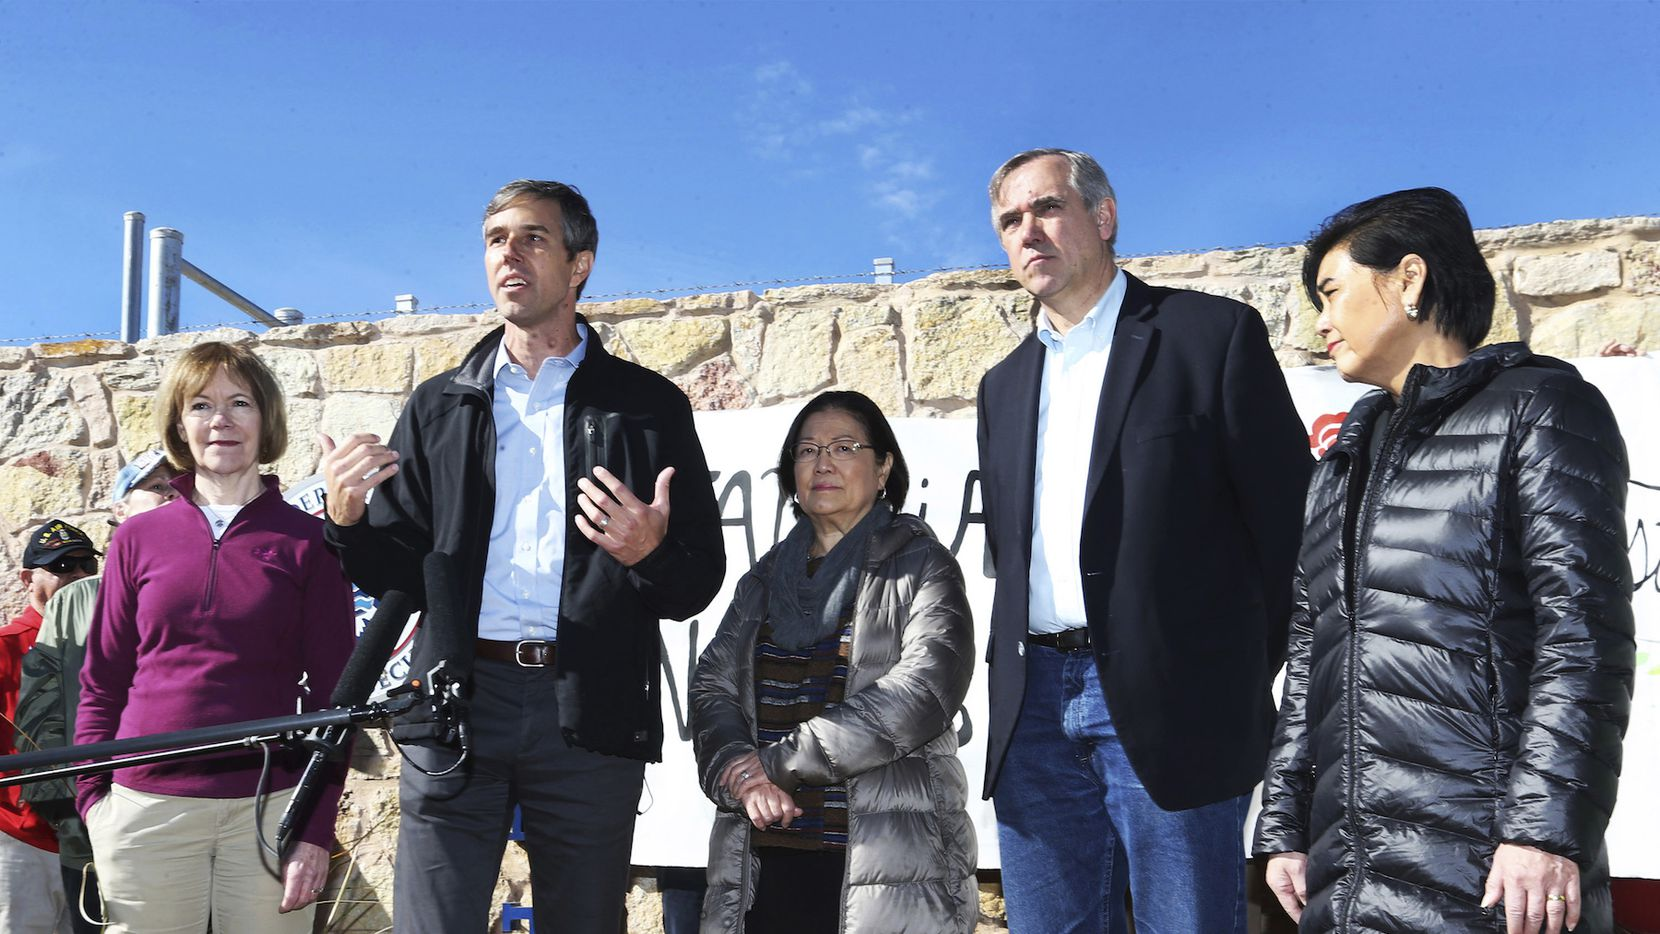 U.S. Rep. Beto O'Rourke, D-El Paso, second from left, speaks with a congressional delegation after touring the Tornillo international port of entry where more than 2,000 undocumented children are being housed Saturday, Dec. 15 East of El Paso, TX. With him are from left, U.S. Sen. Tina Smith, D-MN, U.S. Sen. Mazie Hirono, D-HI, U.S. Sen. Jeff Merkley, D-Oregon and U.S. Rep. Judy Chew, D-CA.